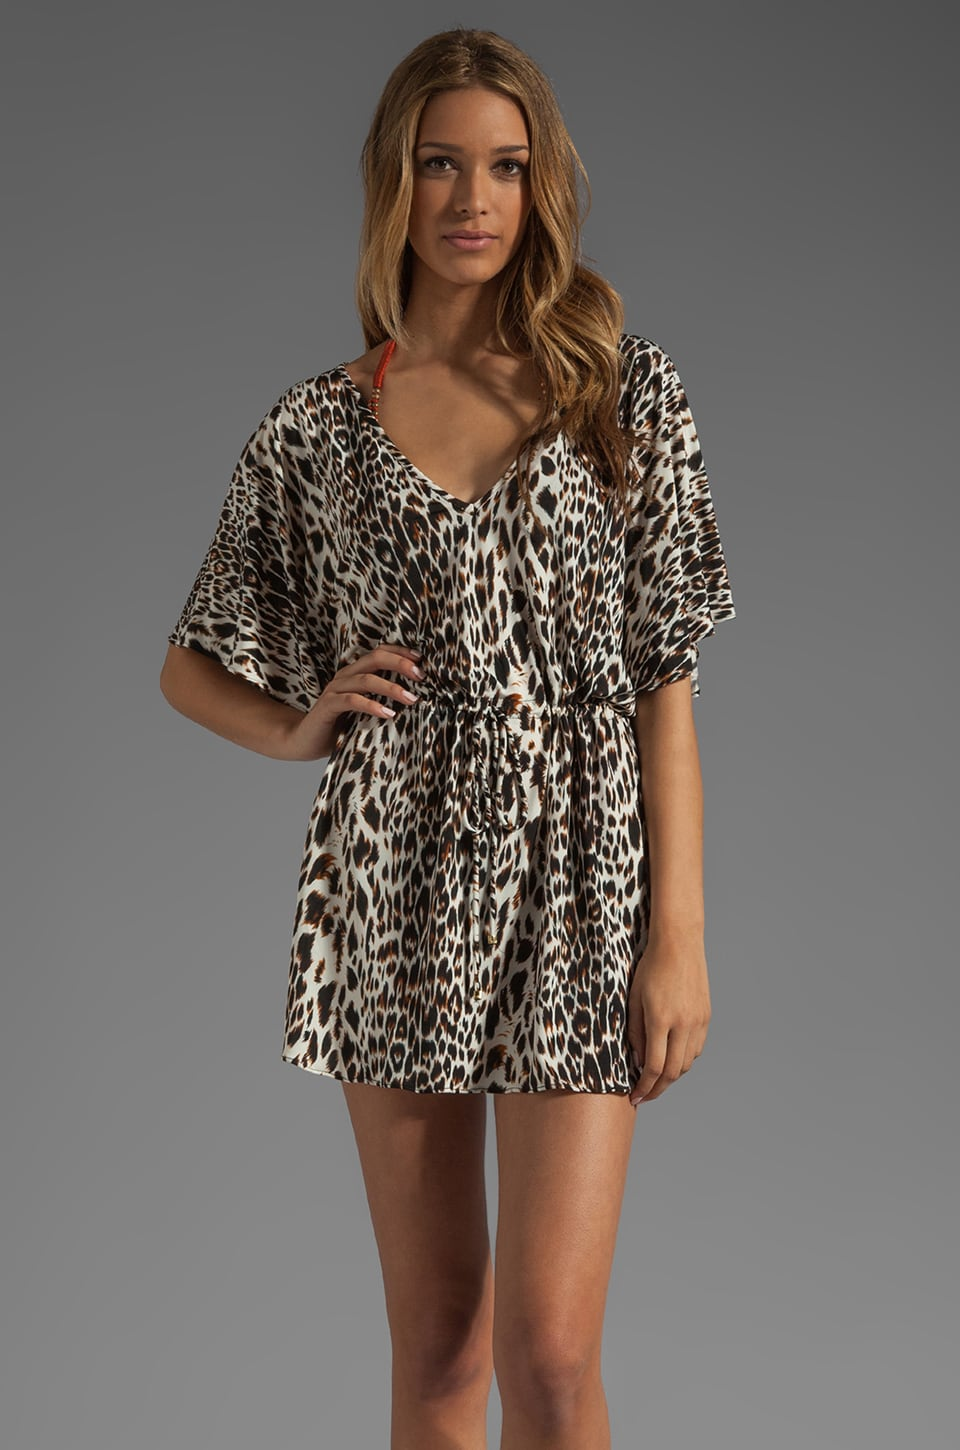 Vix Swimwear Congo Lina Caftan Dress in Animal Print